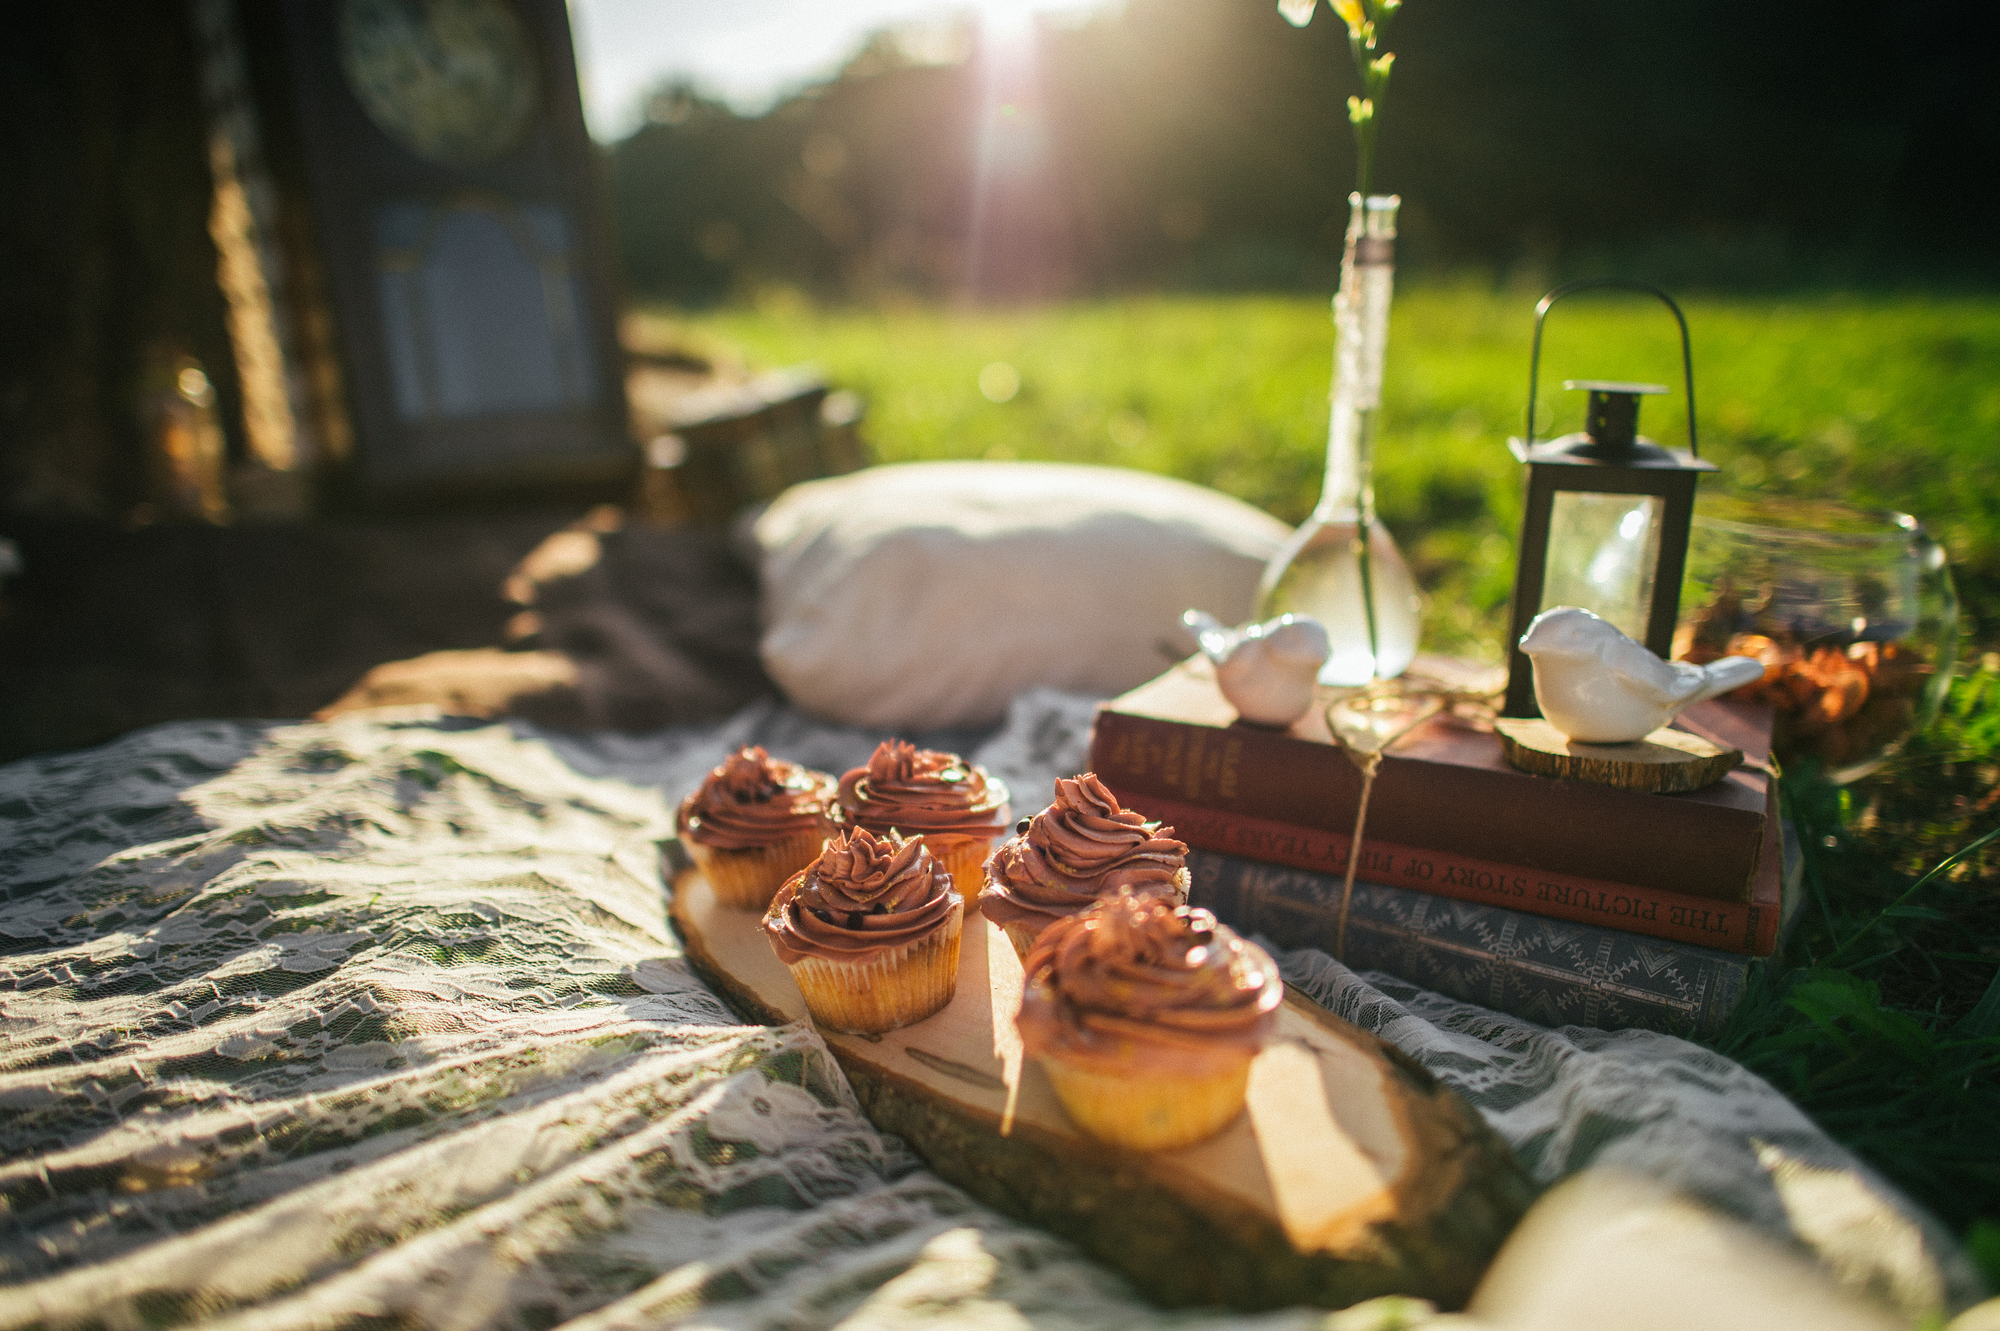 stock photo of picnic on fresh air